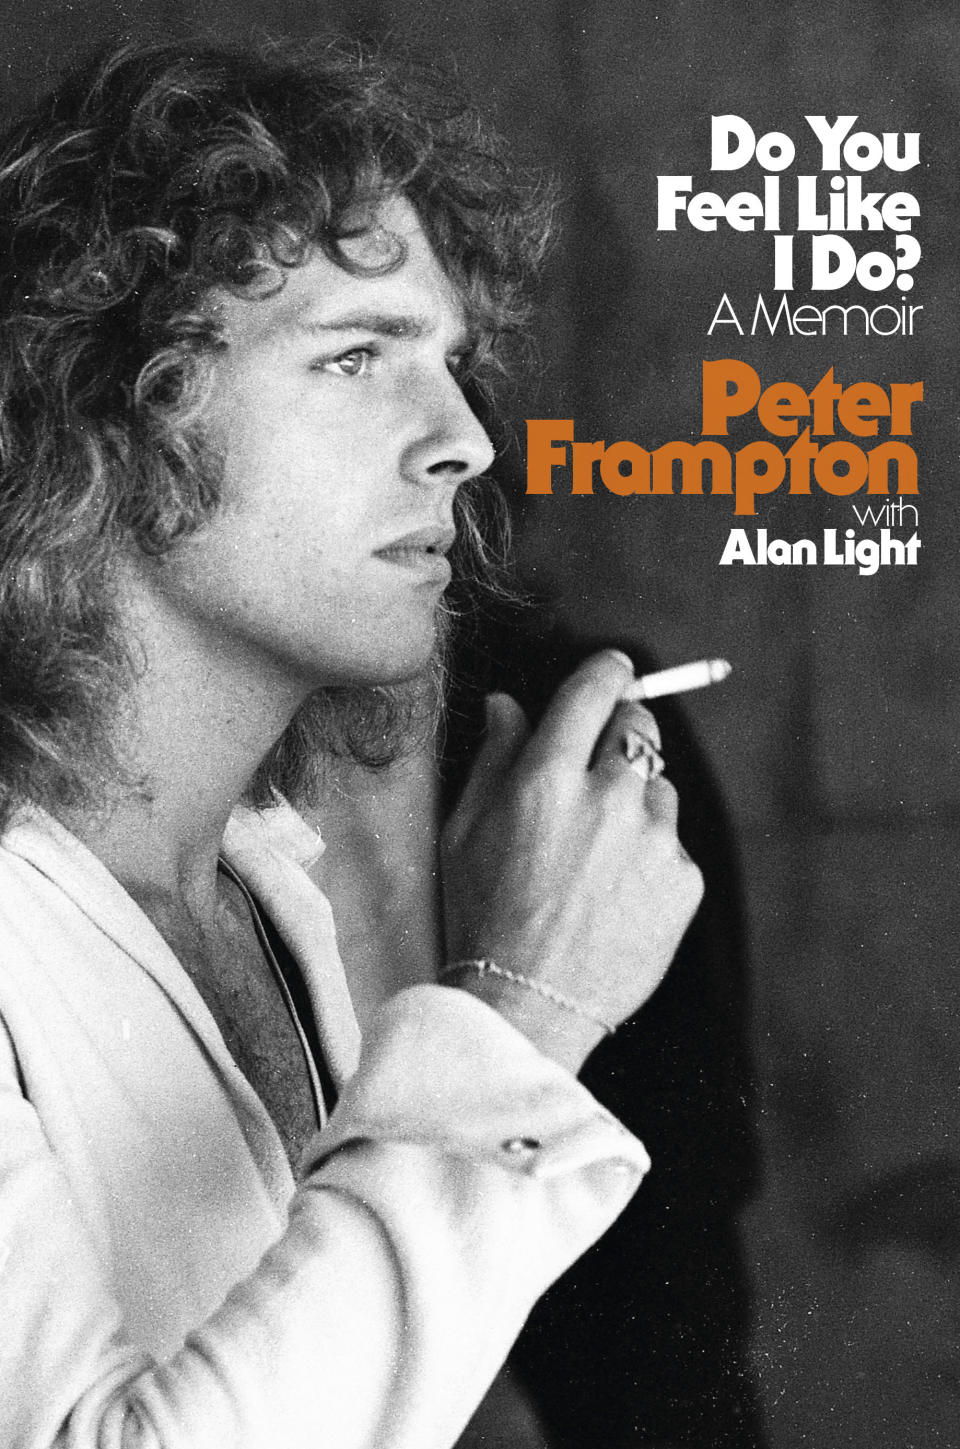 """This cover image released by Hachette shows """"Do You Feel Like I Do?"""" by Peter Frampton with Alan Light. (Hachette via AP)"""